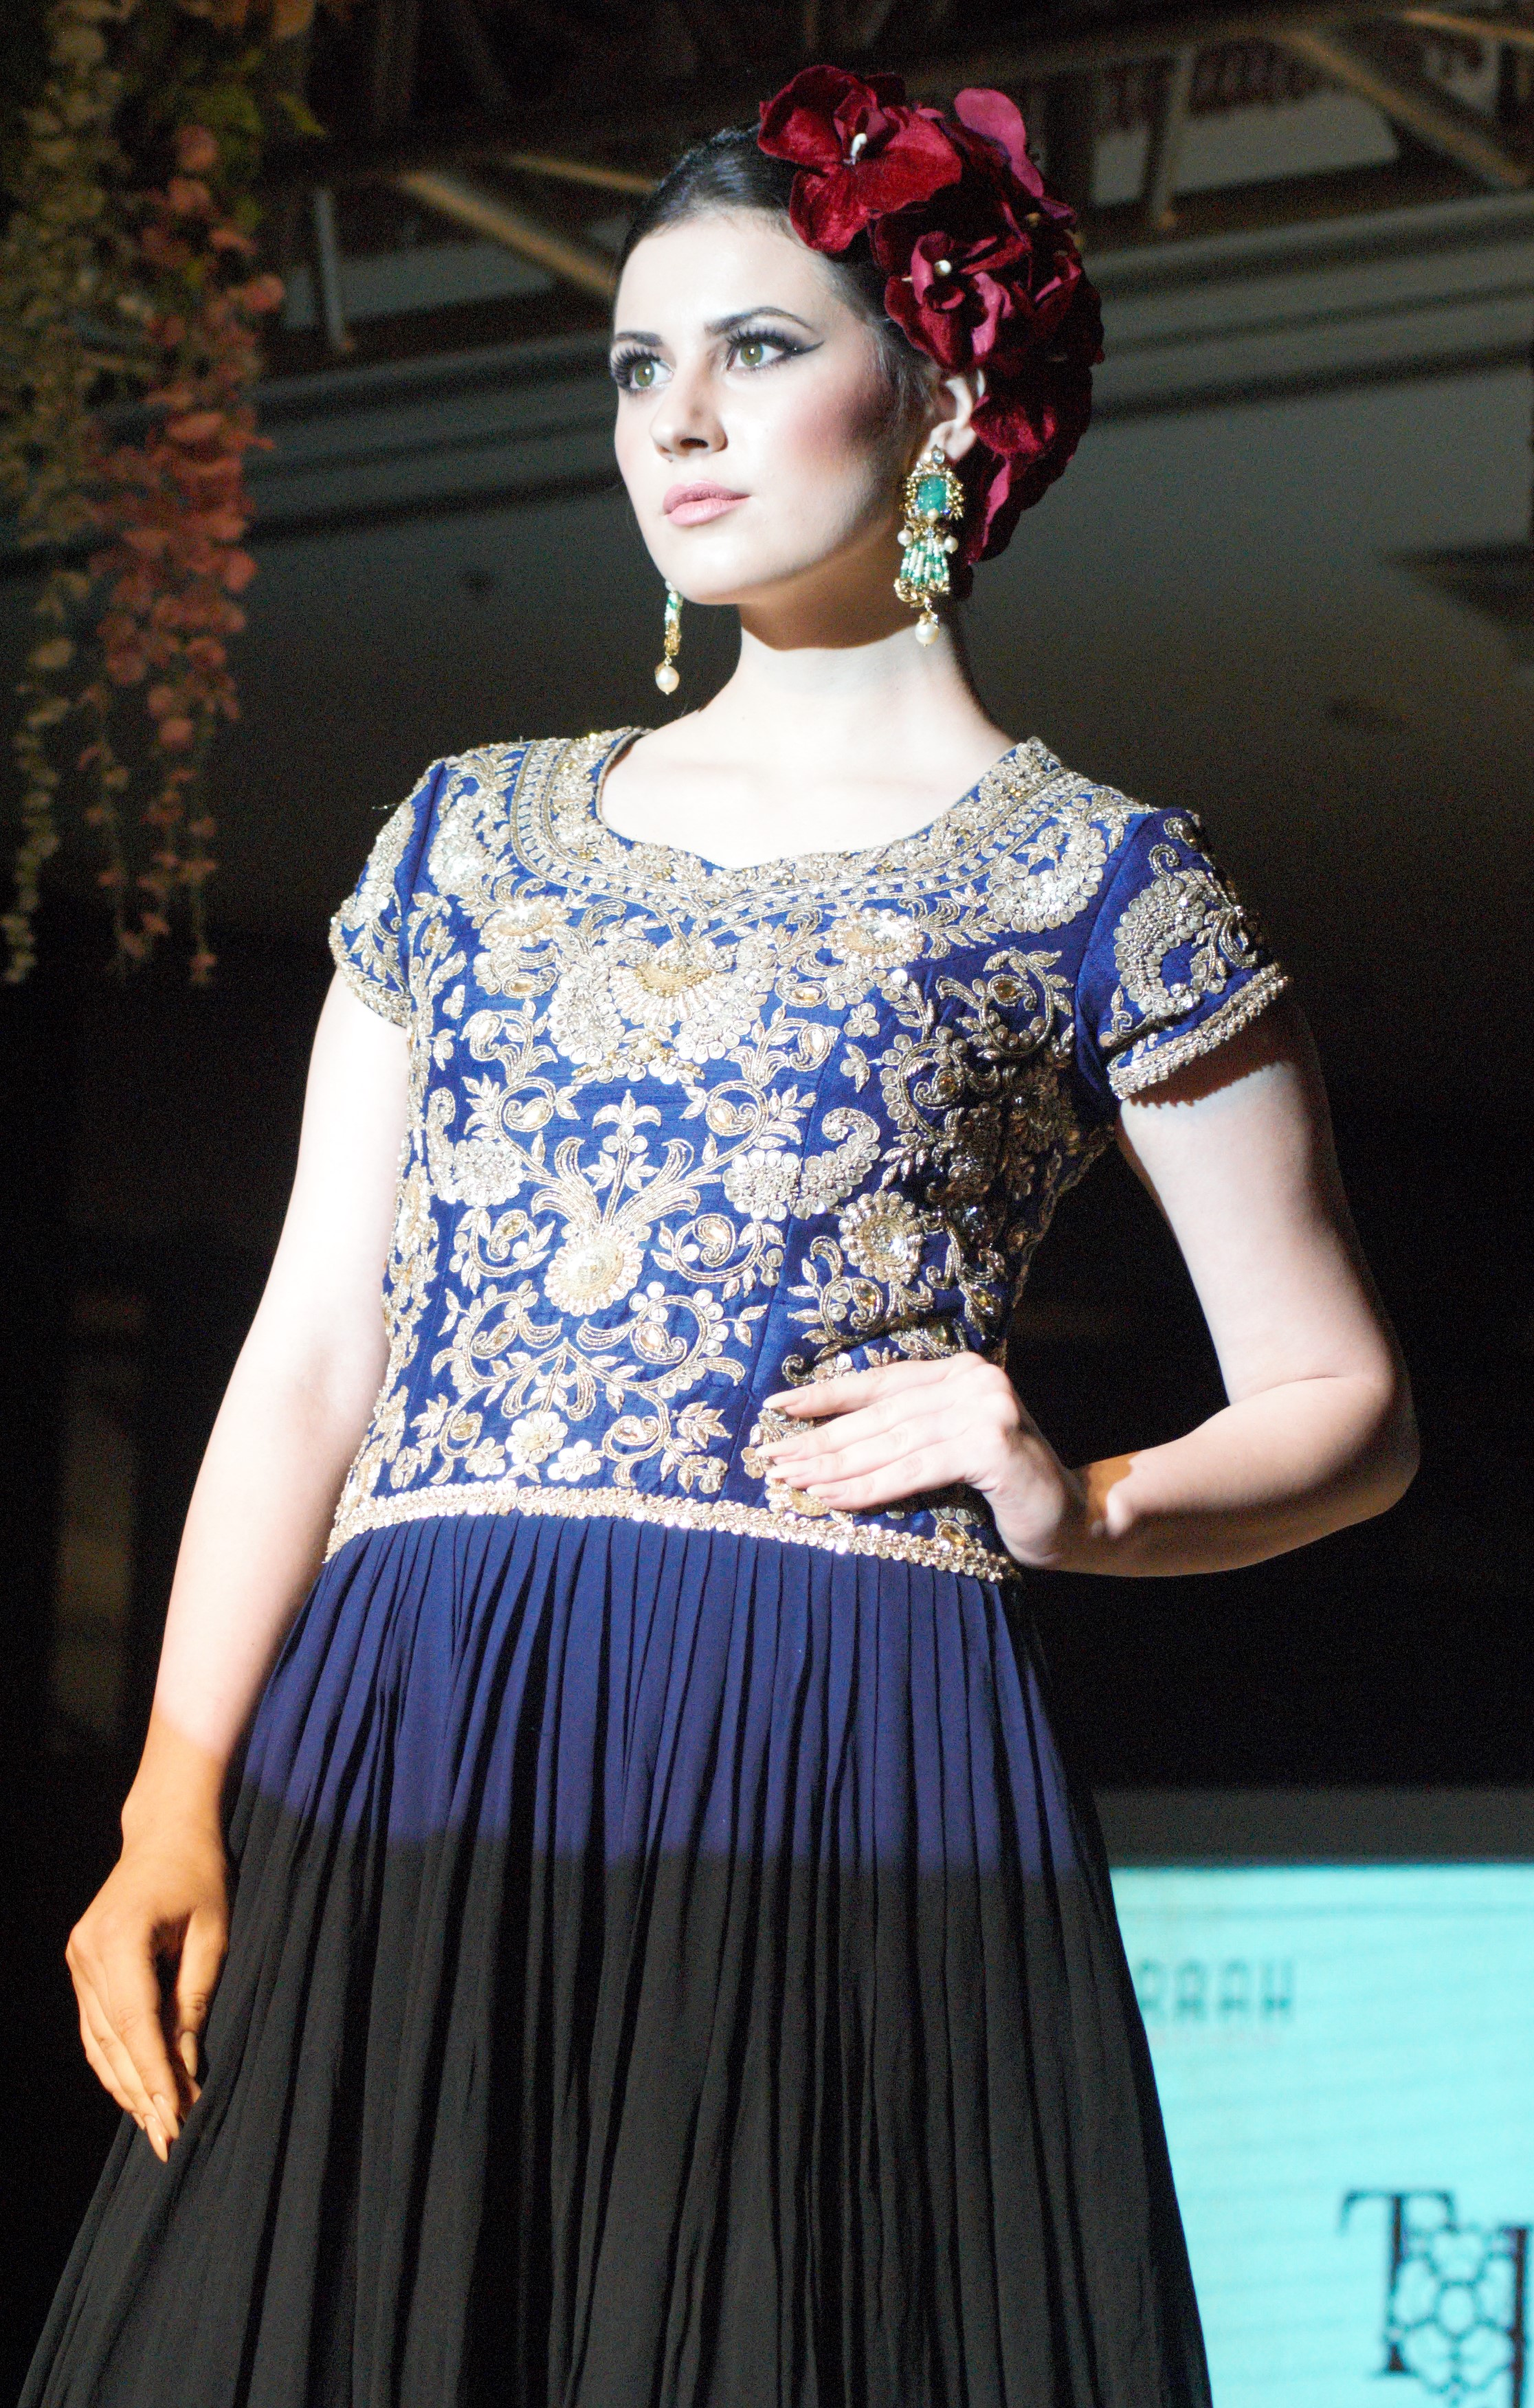 : FASHION SHOW HELD AT J W MARRIOTT